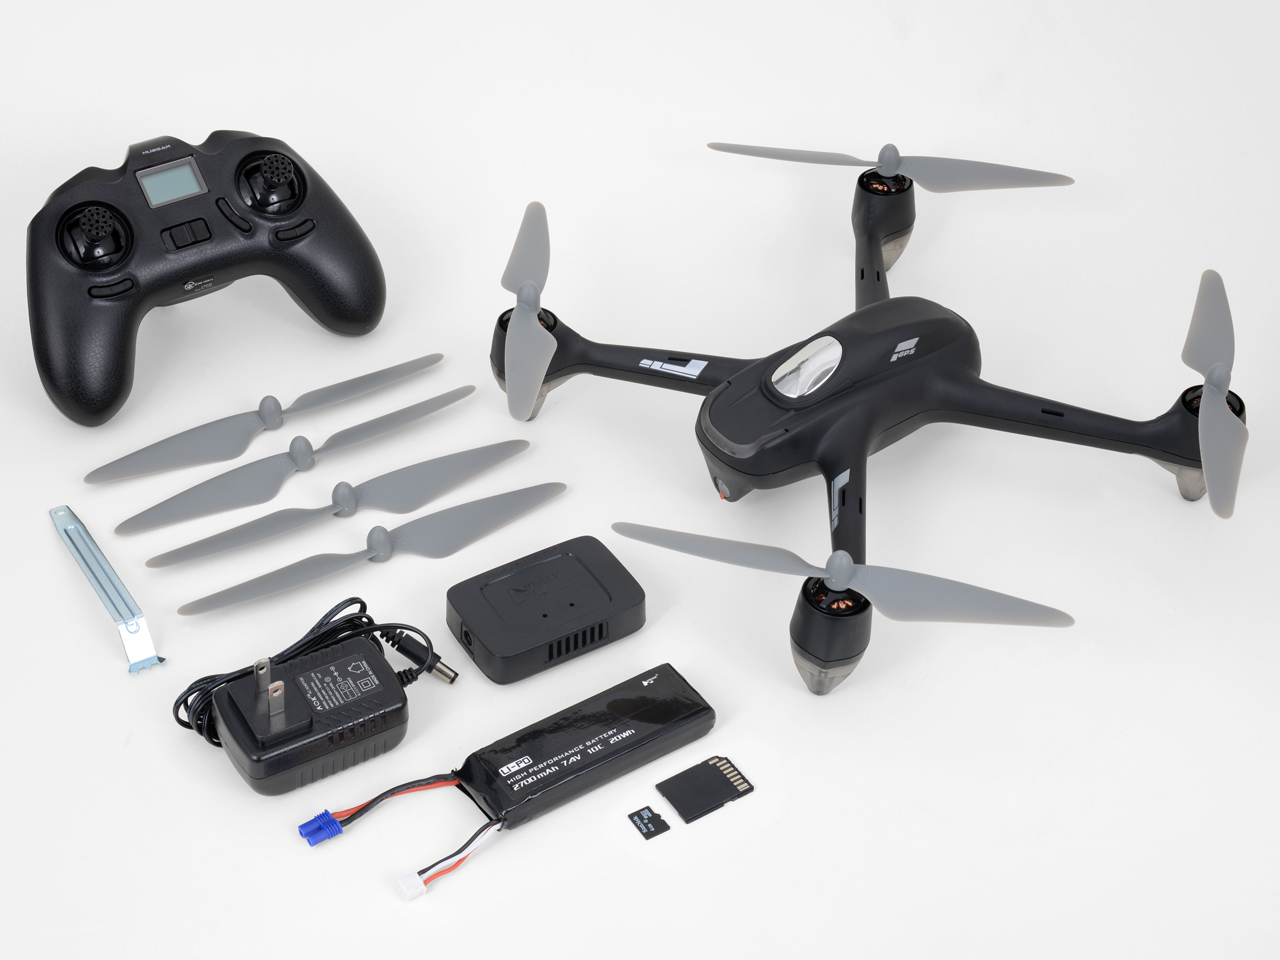 X4 CAM BRUSHLESS H501C G-FORCE ジーフォース【本州・四国は送料無料】